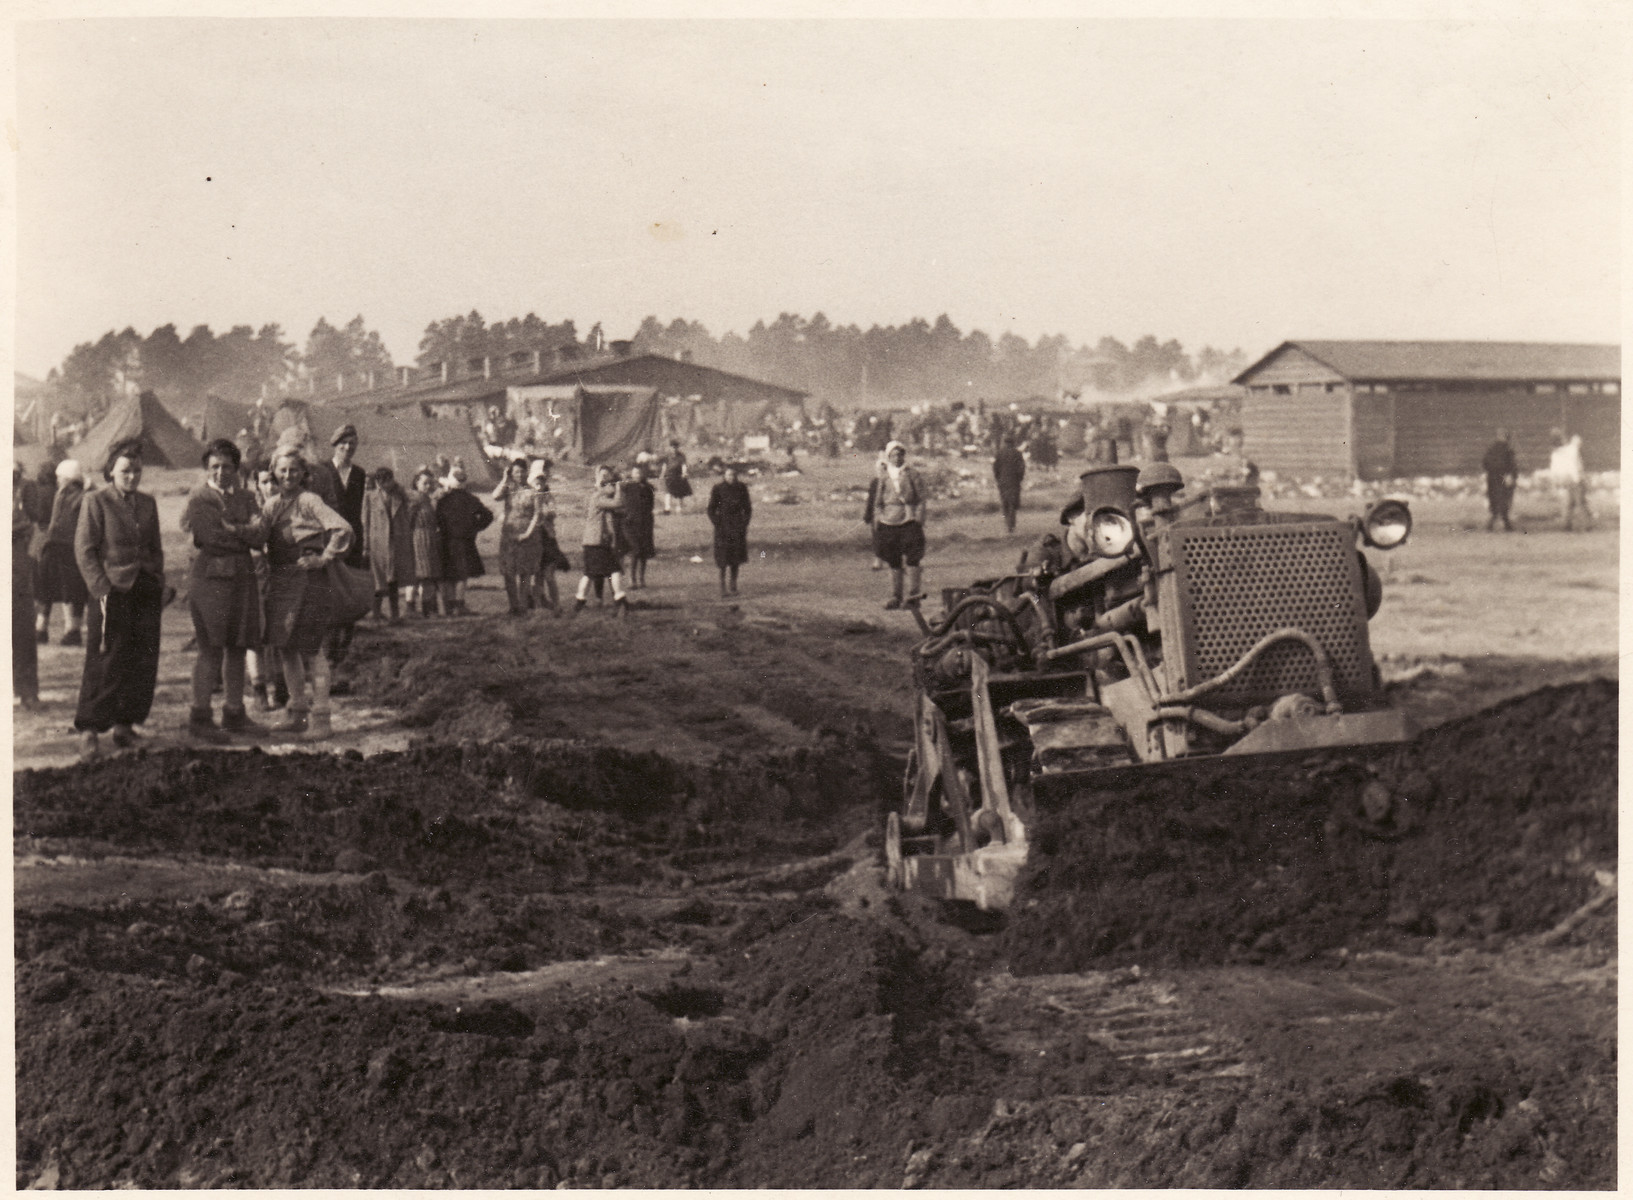 Survivors stand and watch as a tractor digs a mass grave at the Bergen-Belsen concentration camp.